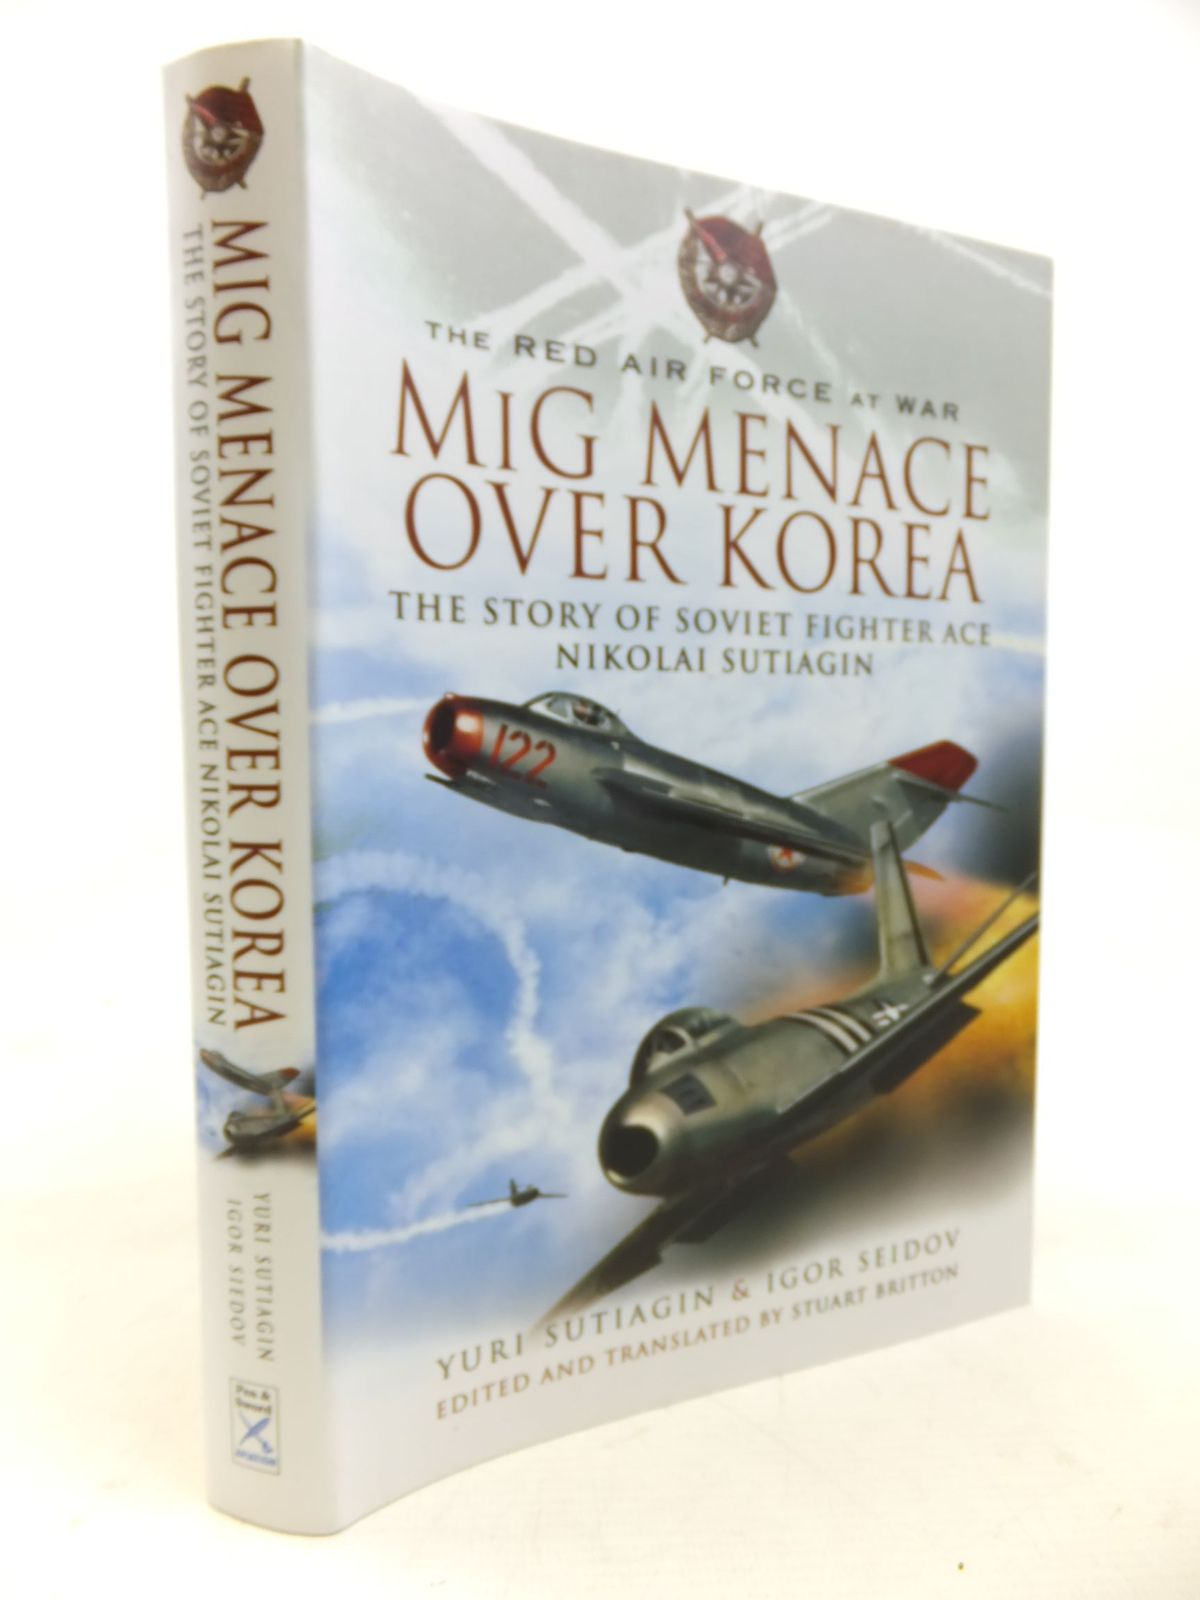 Photo of MIG MENACE OVER KOREA THE STORY OF SOVIET FIGHTER ACE NIKOLAI SUTIAGIN written by Sutiagin, Yuri<br />Seidov, Igor<br />Britton, Stuart published by Pen & Sword Aviation (STOCK CODE: 2116156)  for sale by Stella & Rose's Books